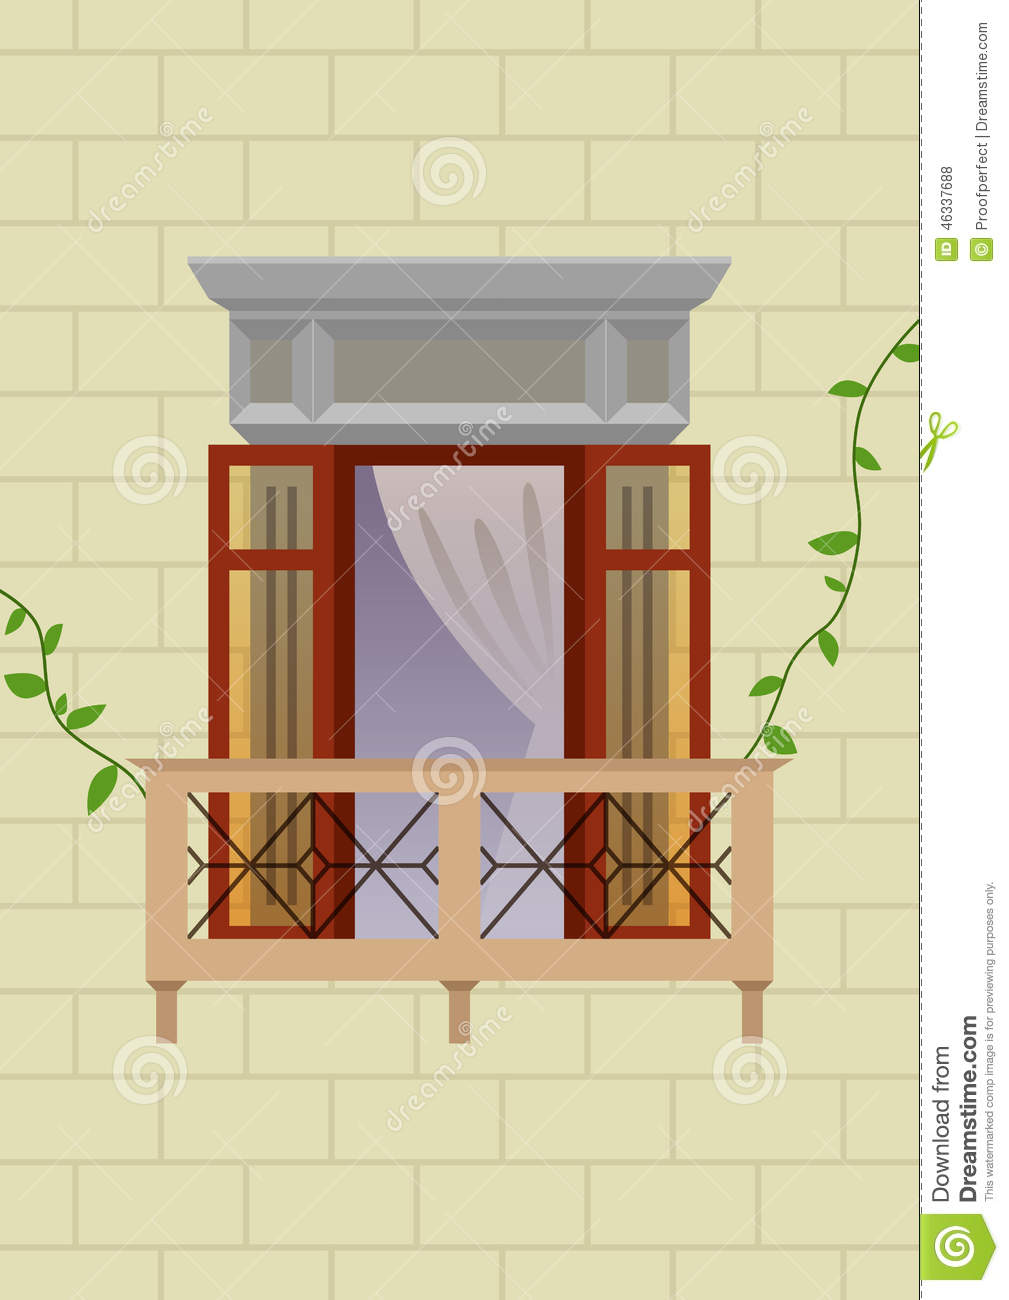 Old style balcony stock illustration illustration of for Balcony vector